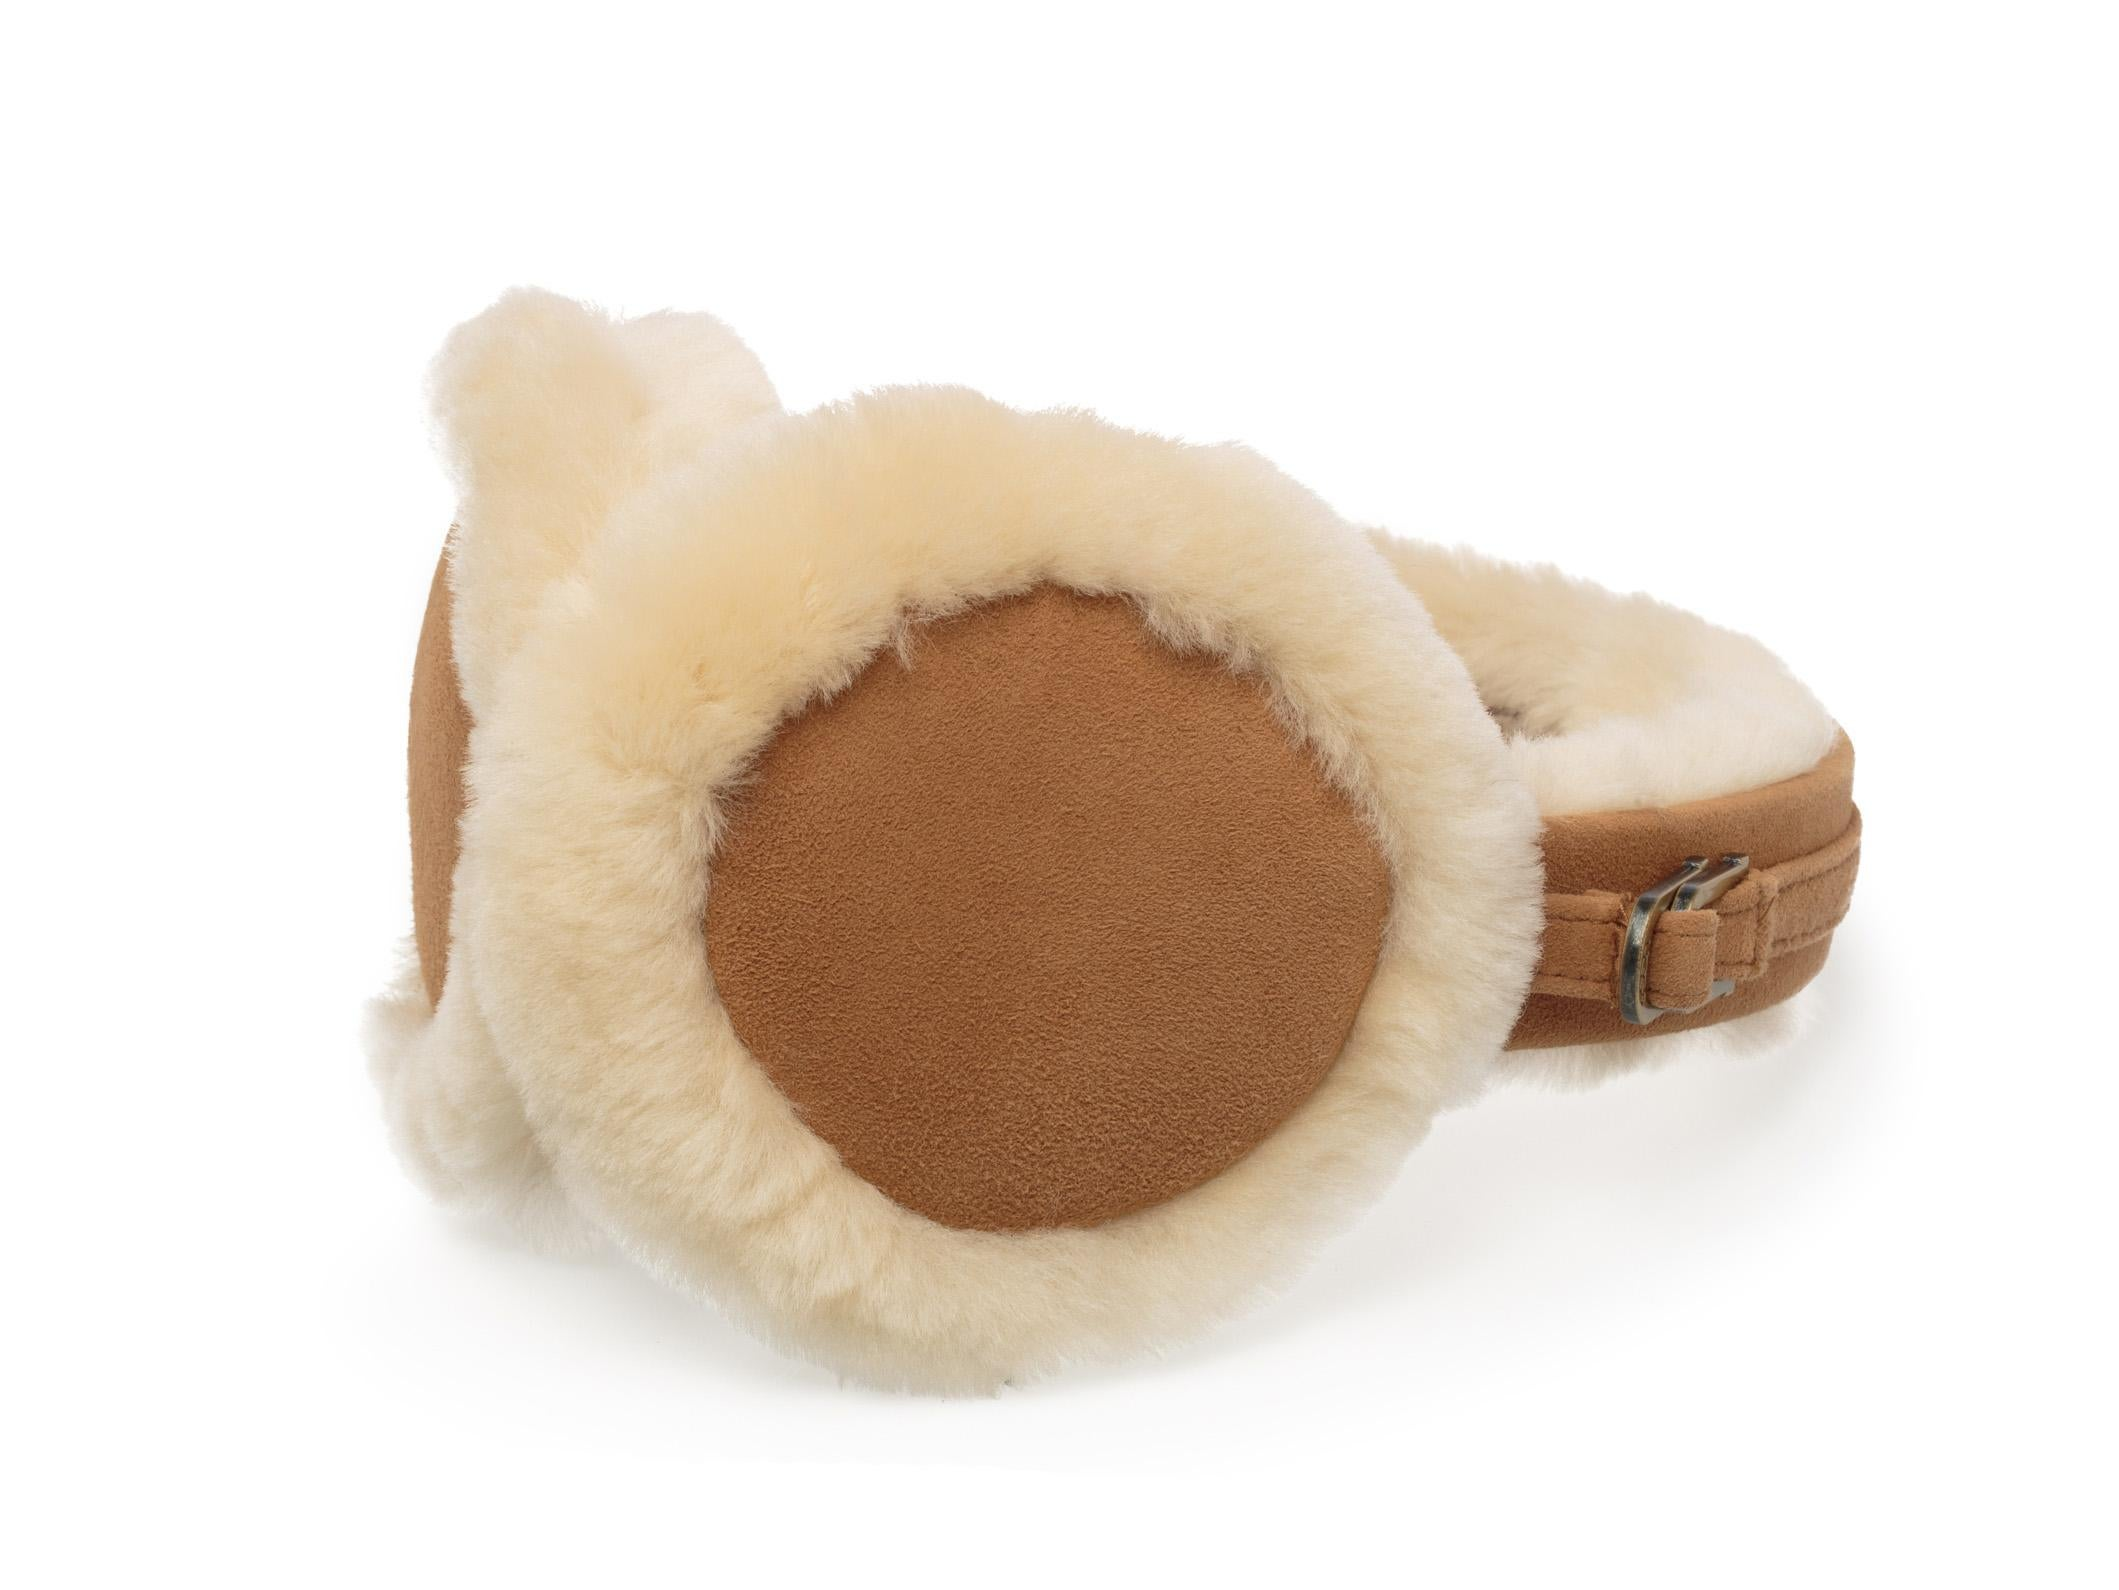 fefe8d88d912 Sheepskin brand Ugg is synonymous with the highest levels of comfort